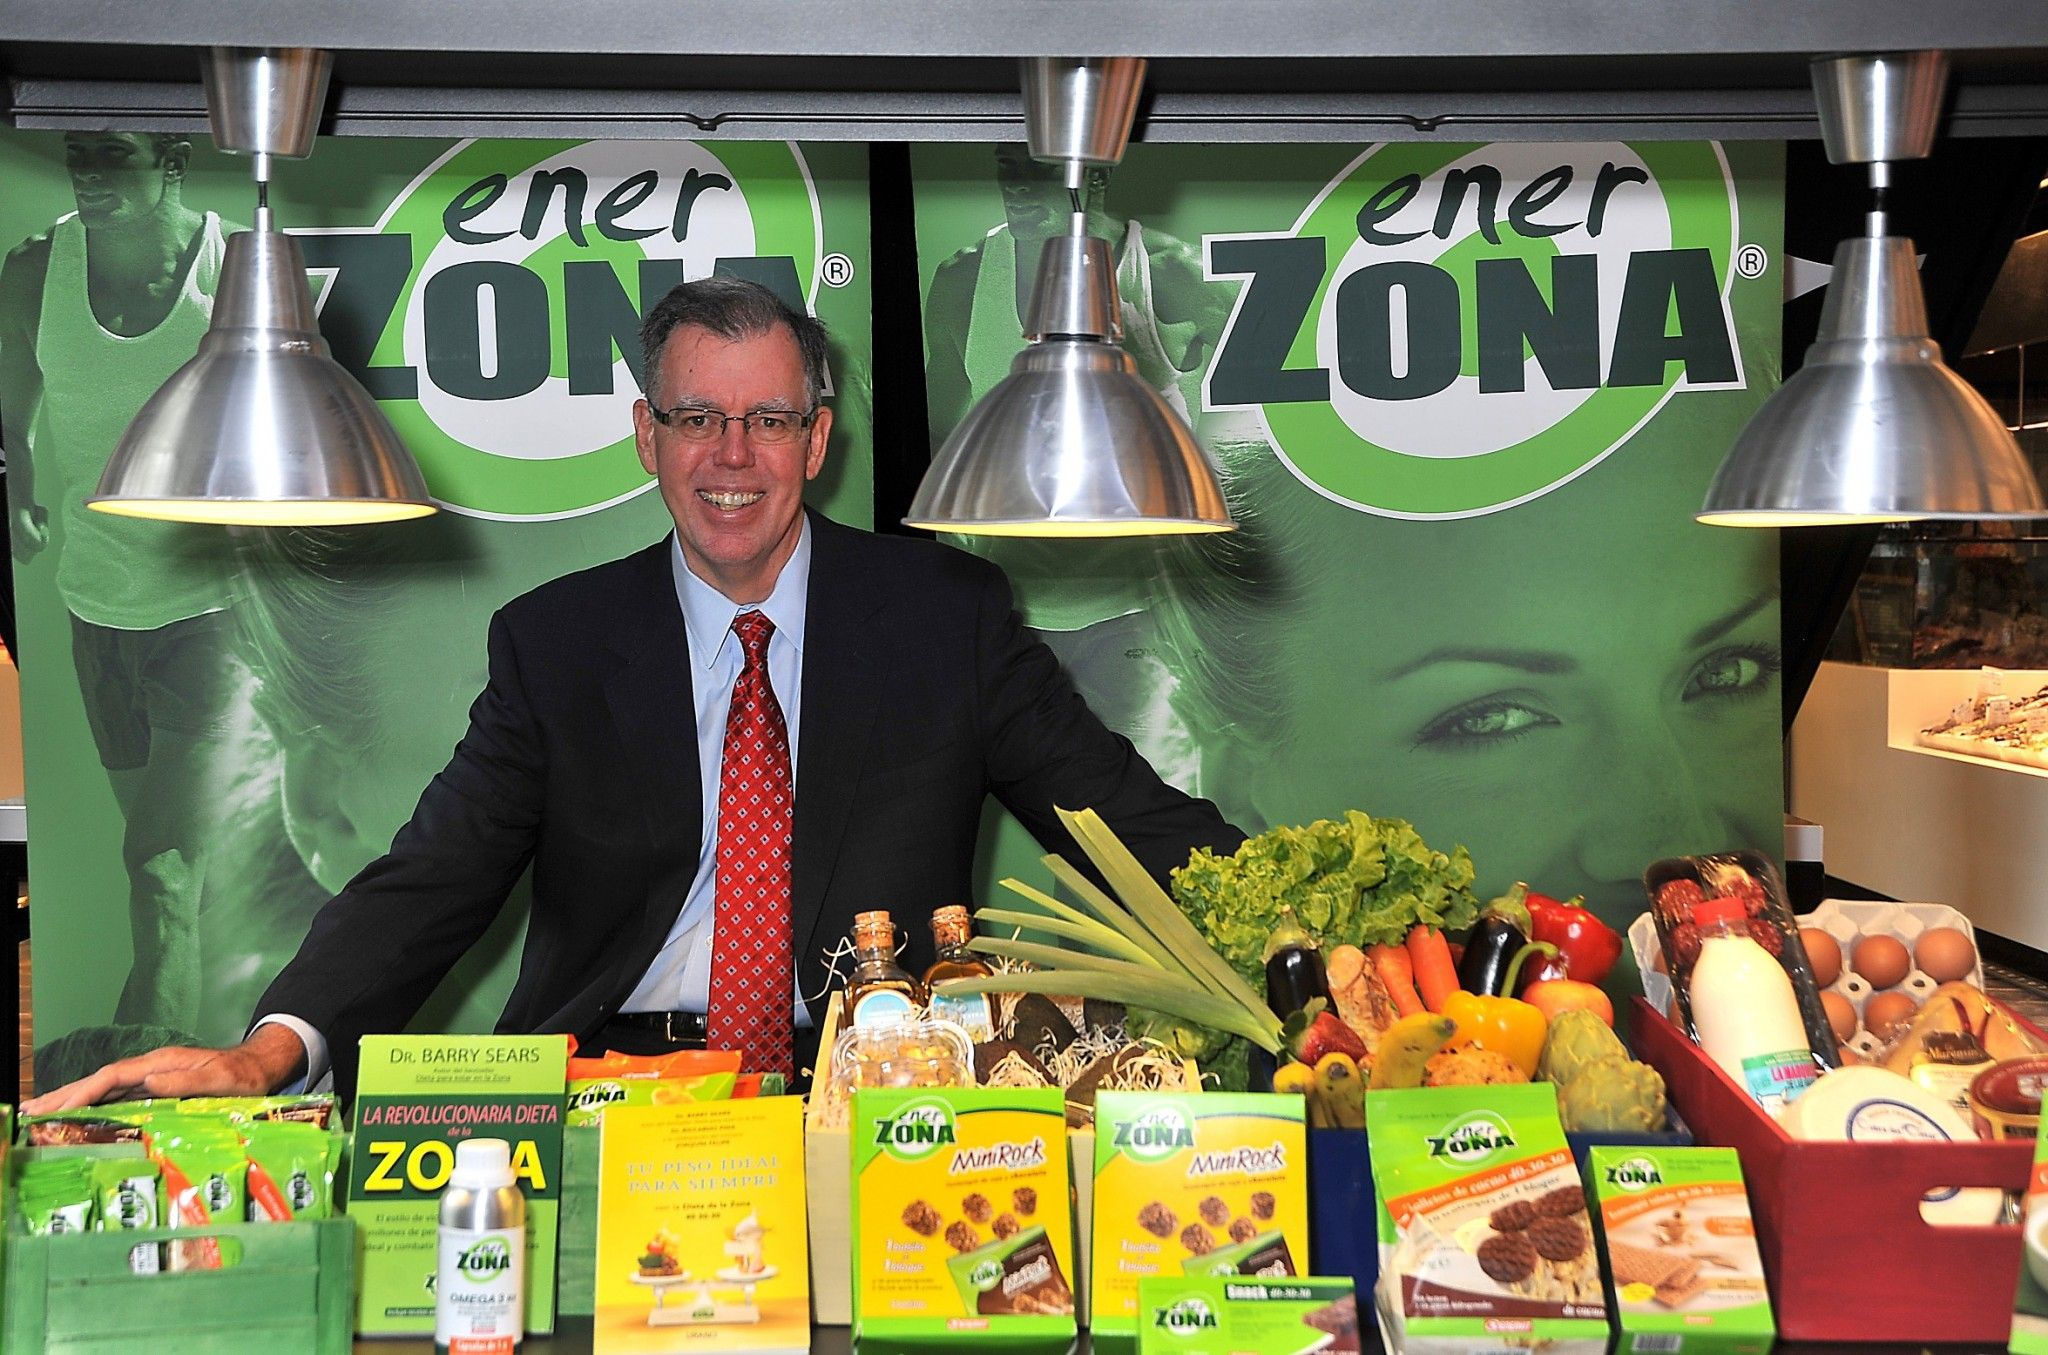 Dr. Barry Sears Creador de la The Zone diet - La dieta la Zona